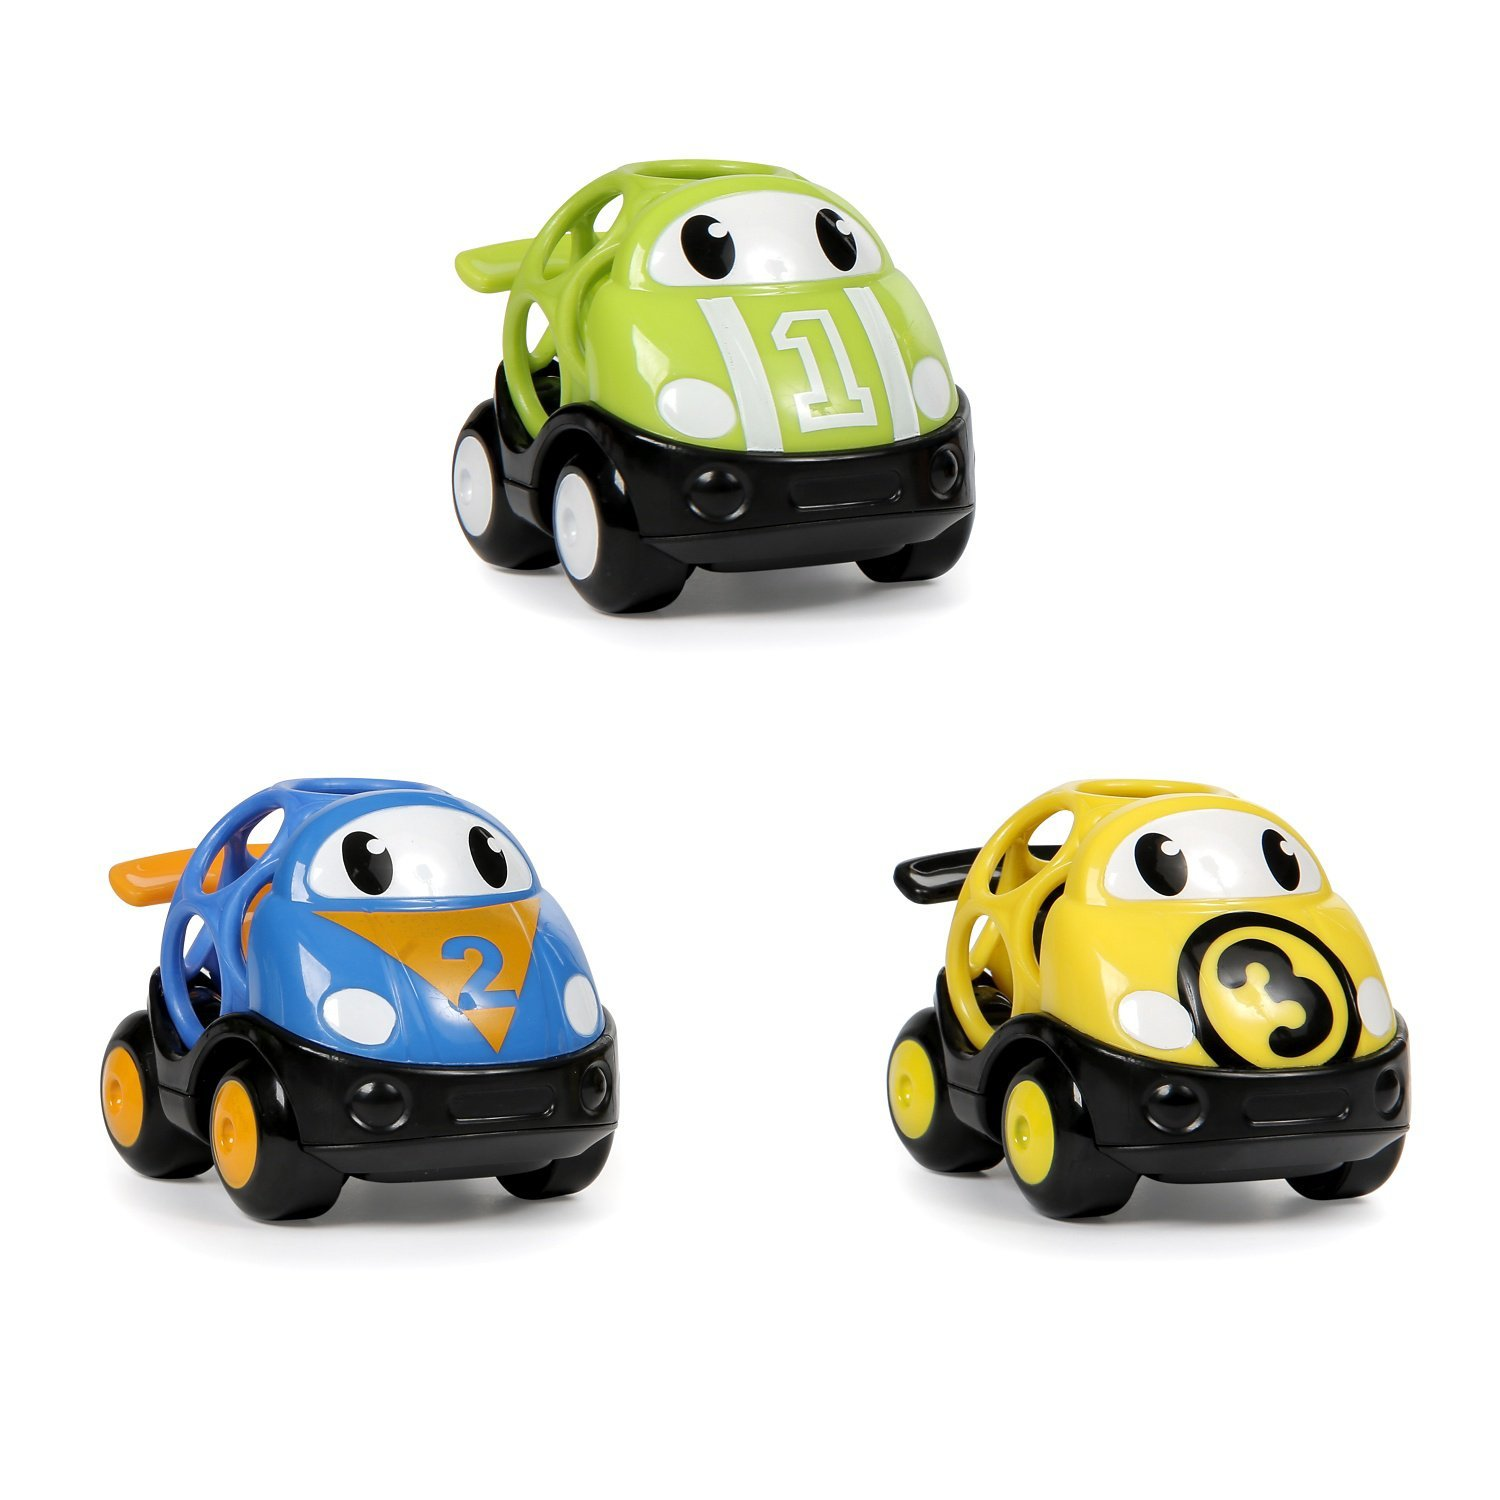 Oball 3 Piece Go Grippers Vehicles, Race Car-3 pack Kids II 10864